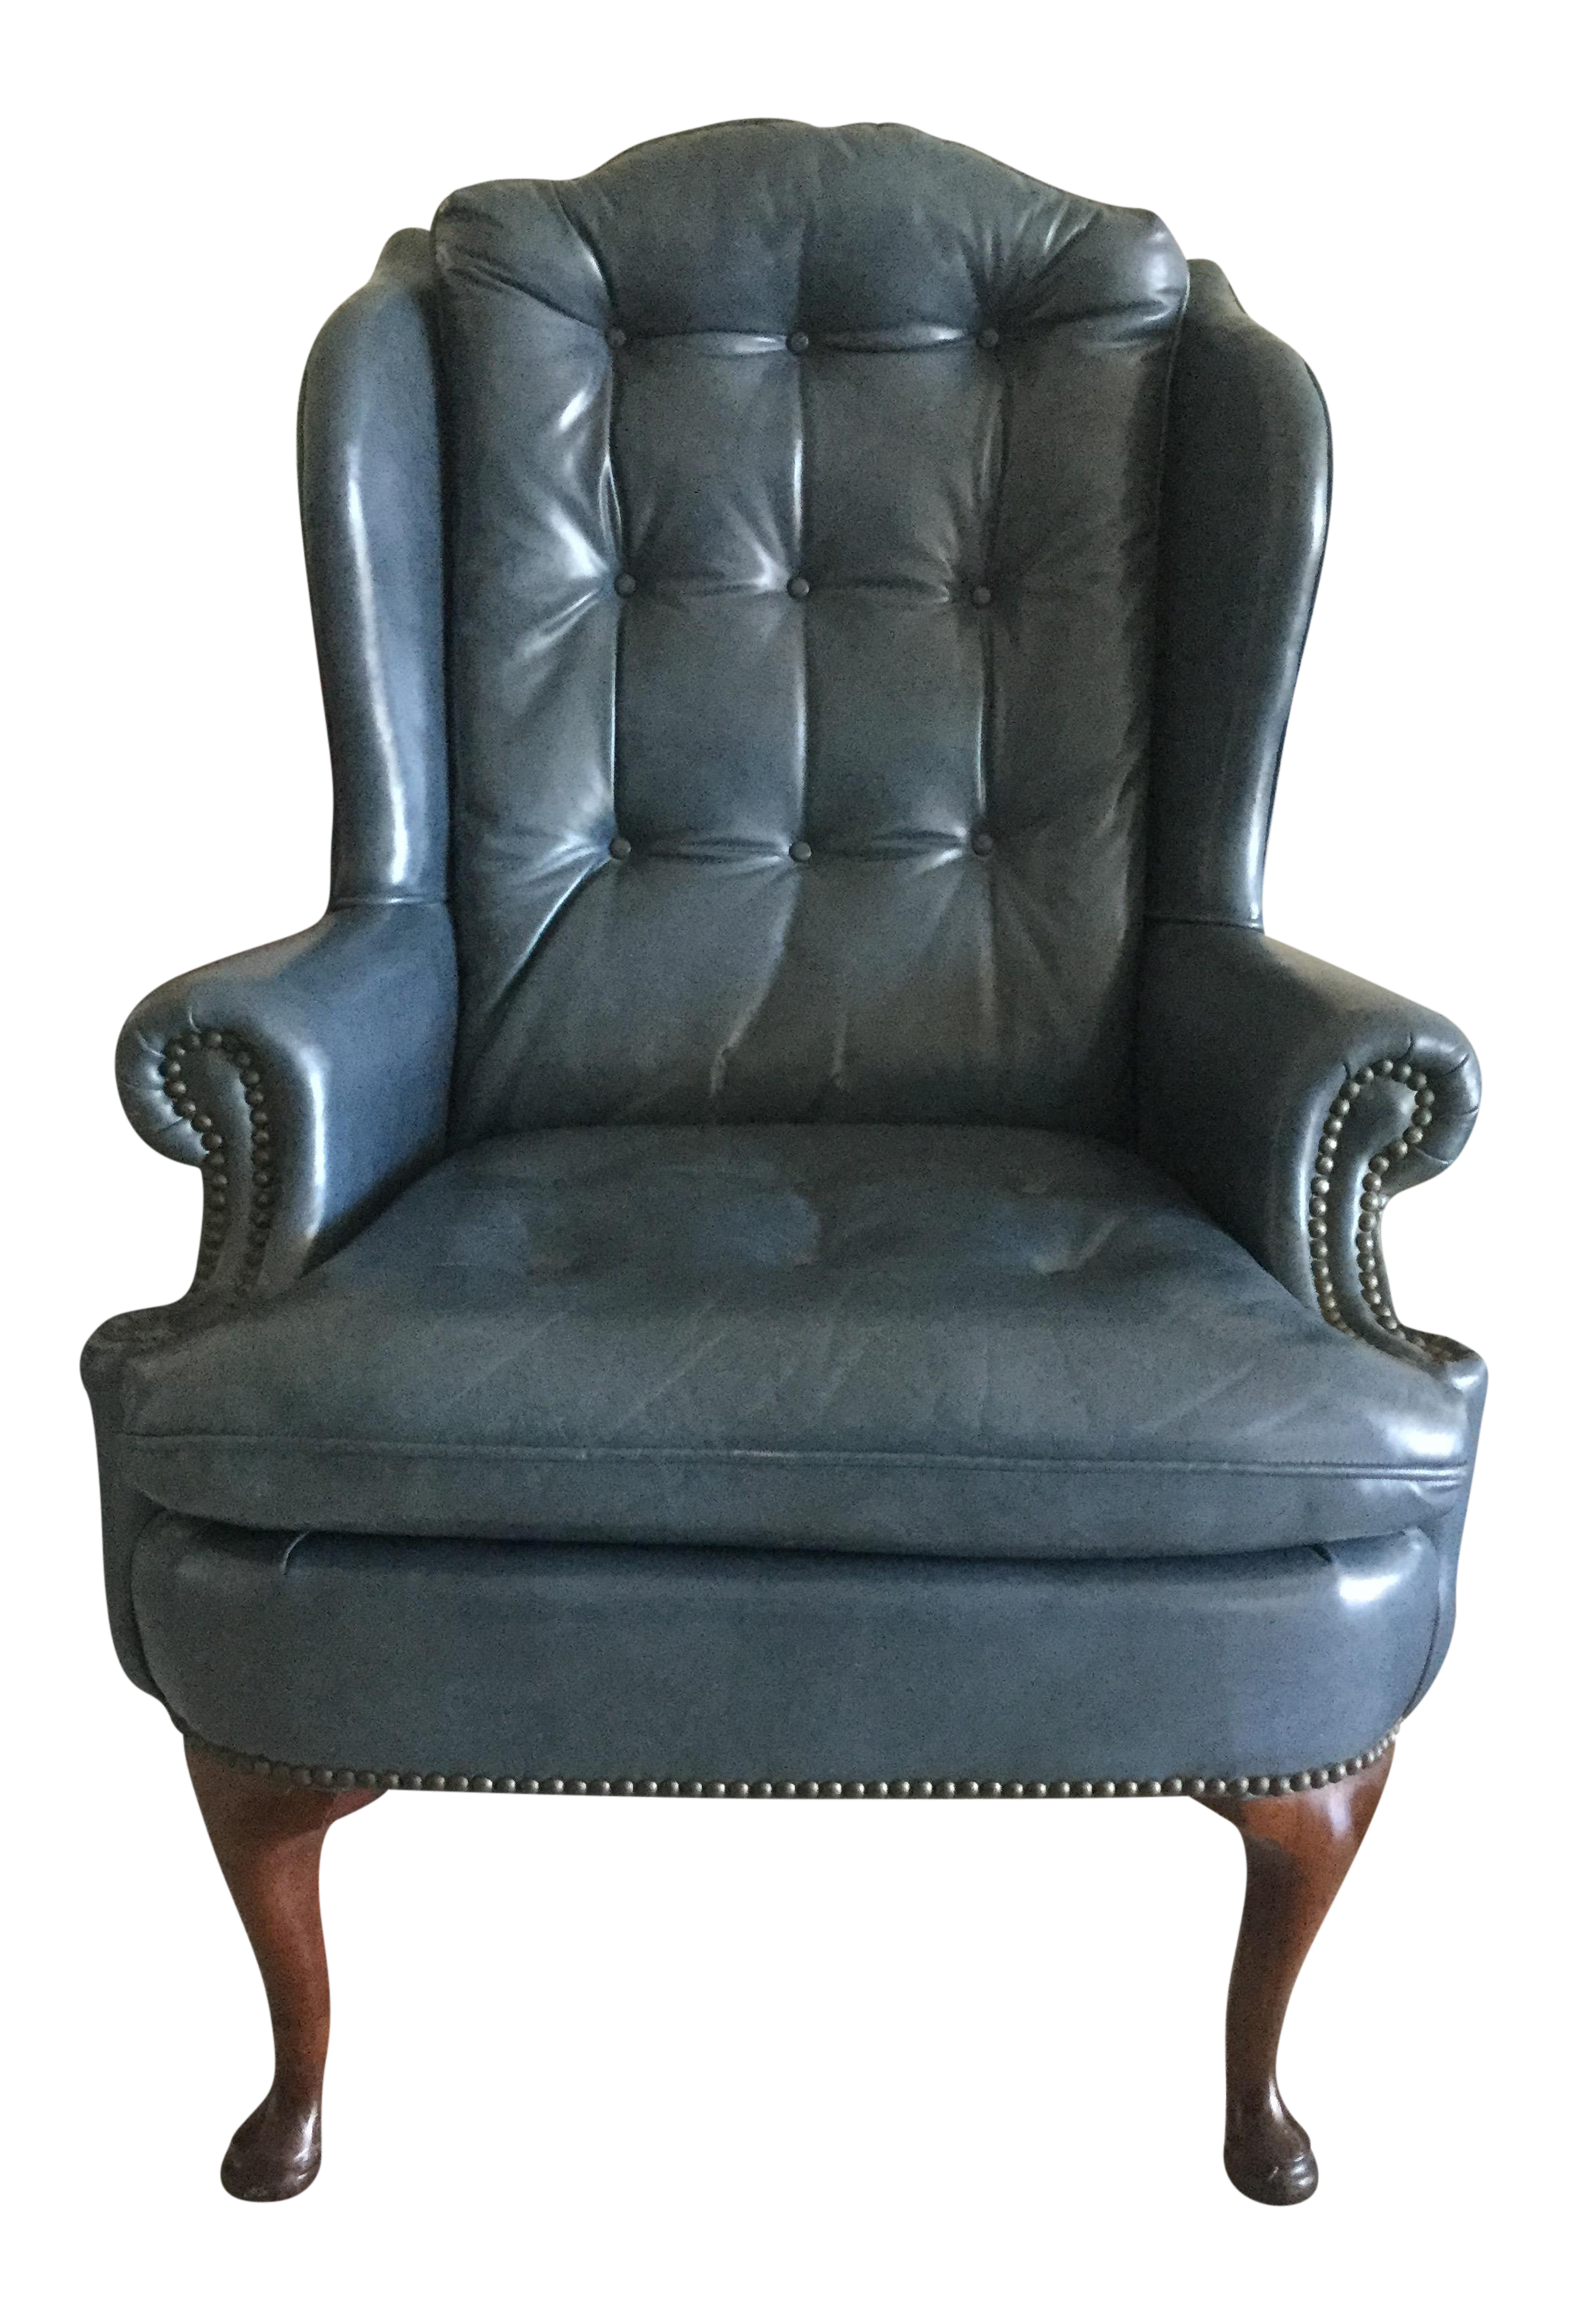 Steel Blue Leather Wingback Chair  sc 1 st  Chairish & Steel Blue Leather Wingback Chair | Chairish